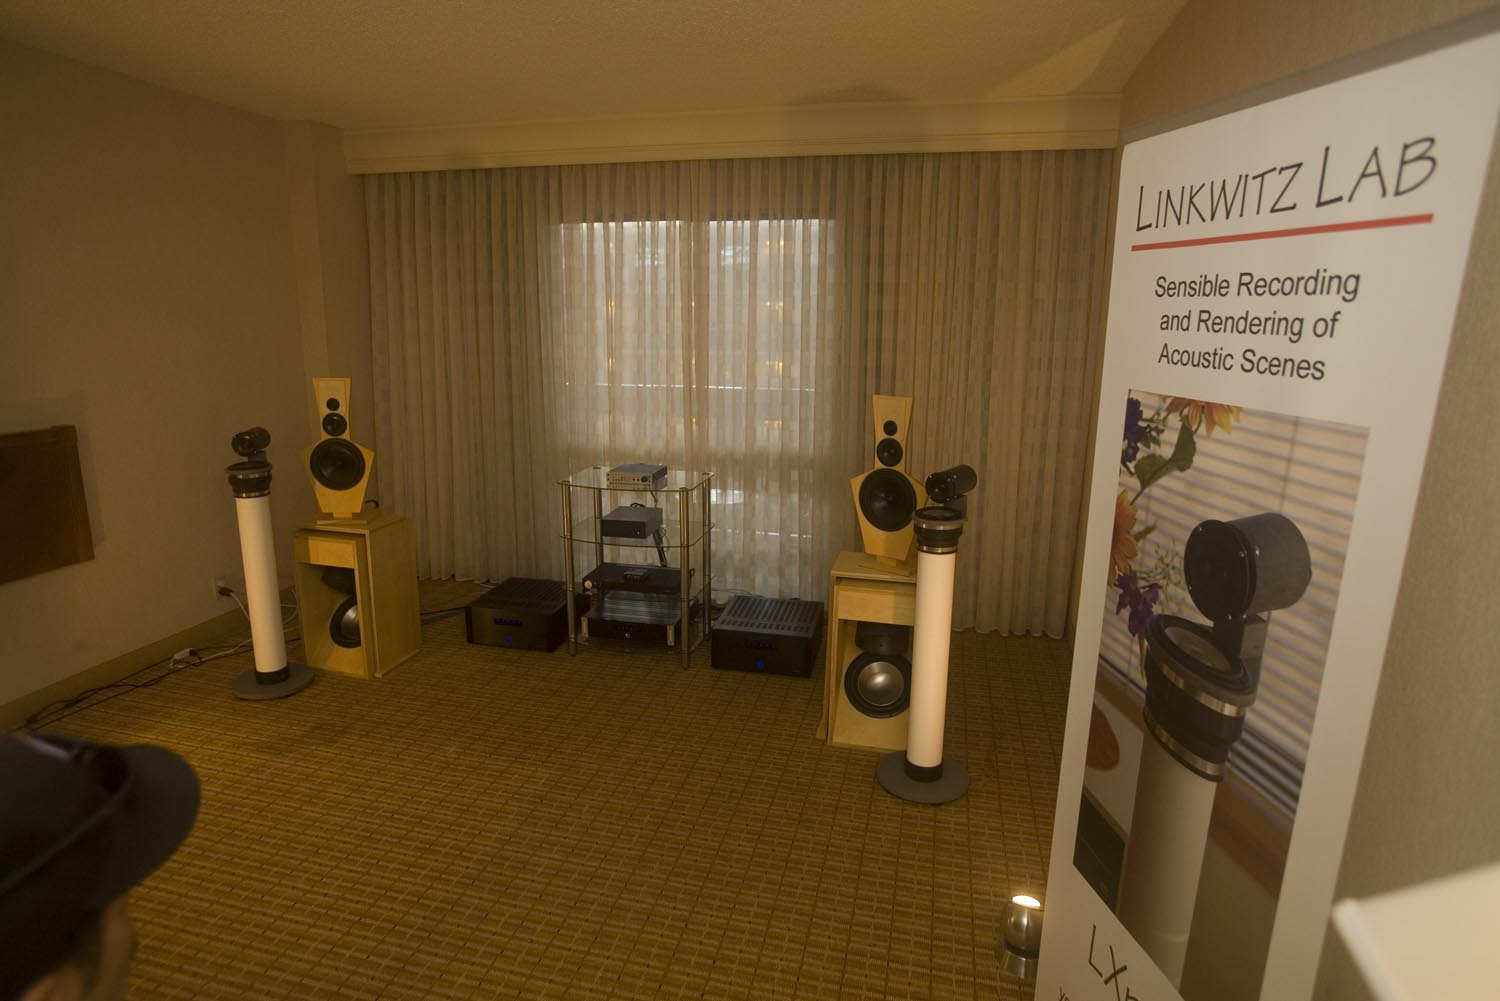 Linkwitz Lab, LX521, LXmini Reference Loudspeakers - RMAF 2014